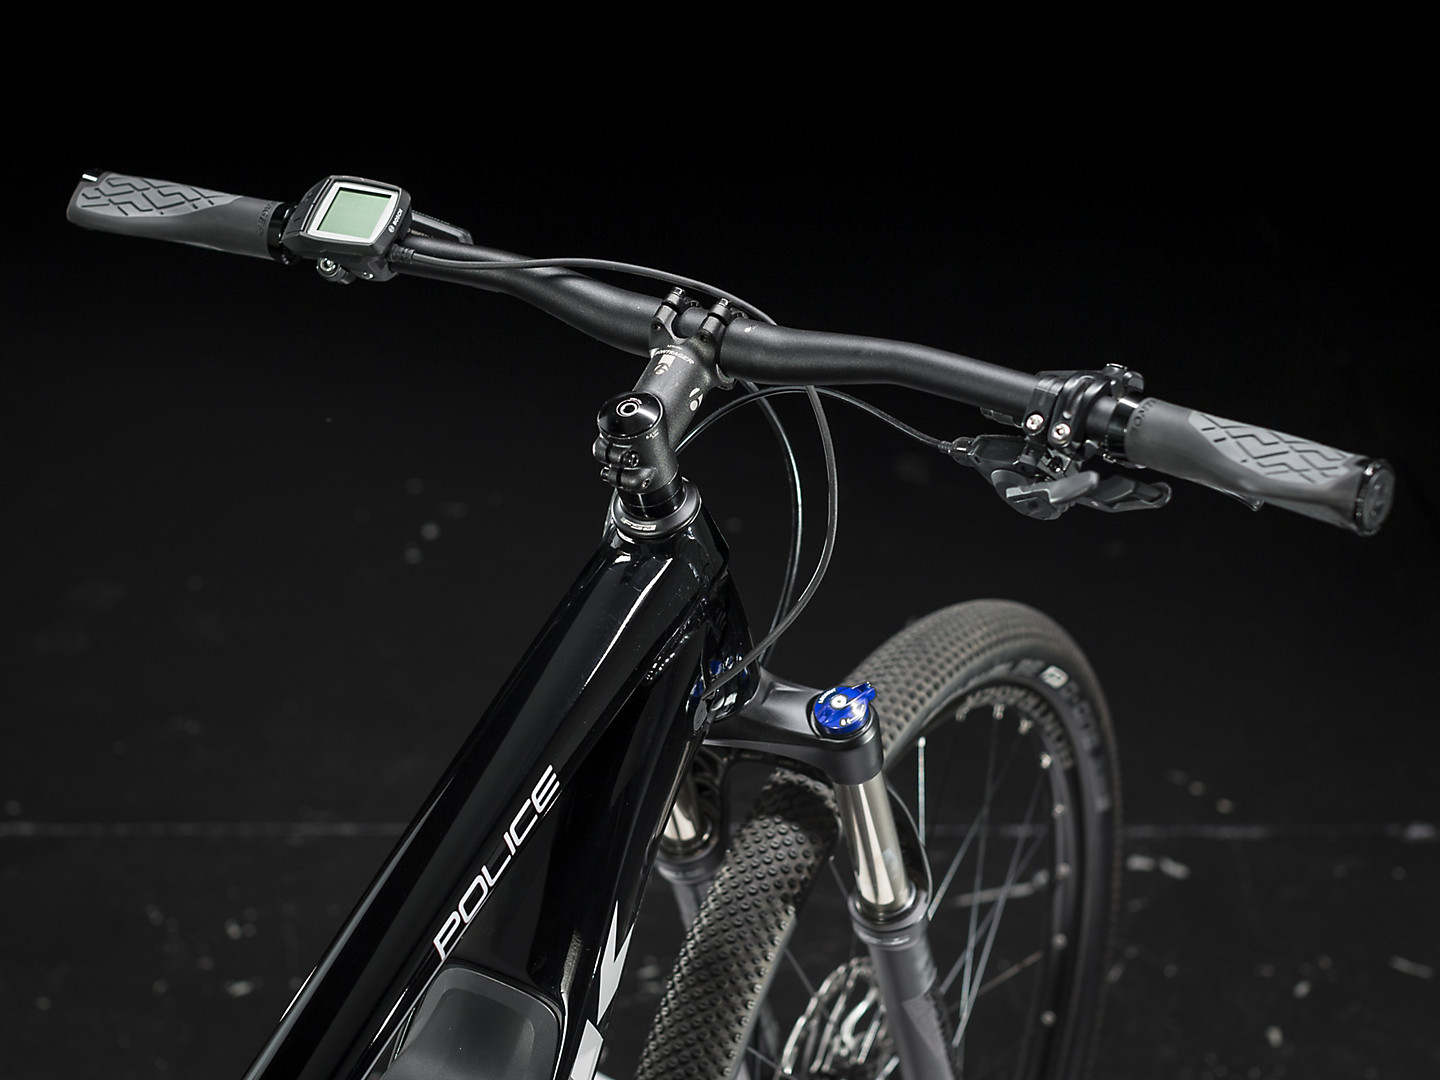 Bicycle handlebar in the black background